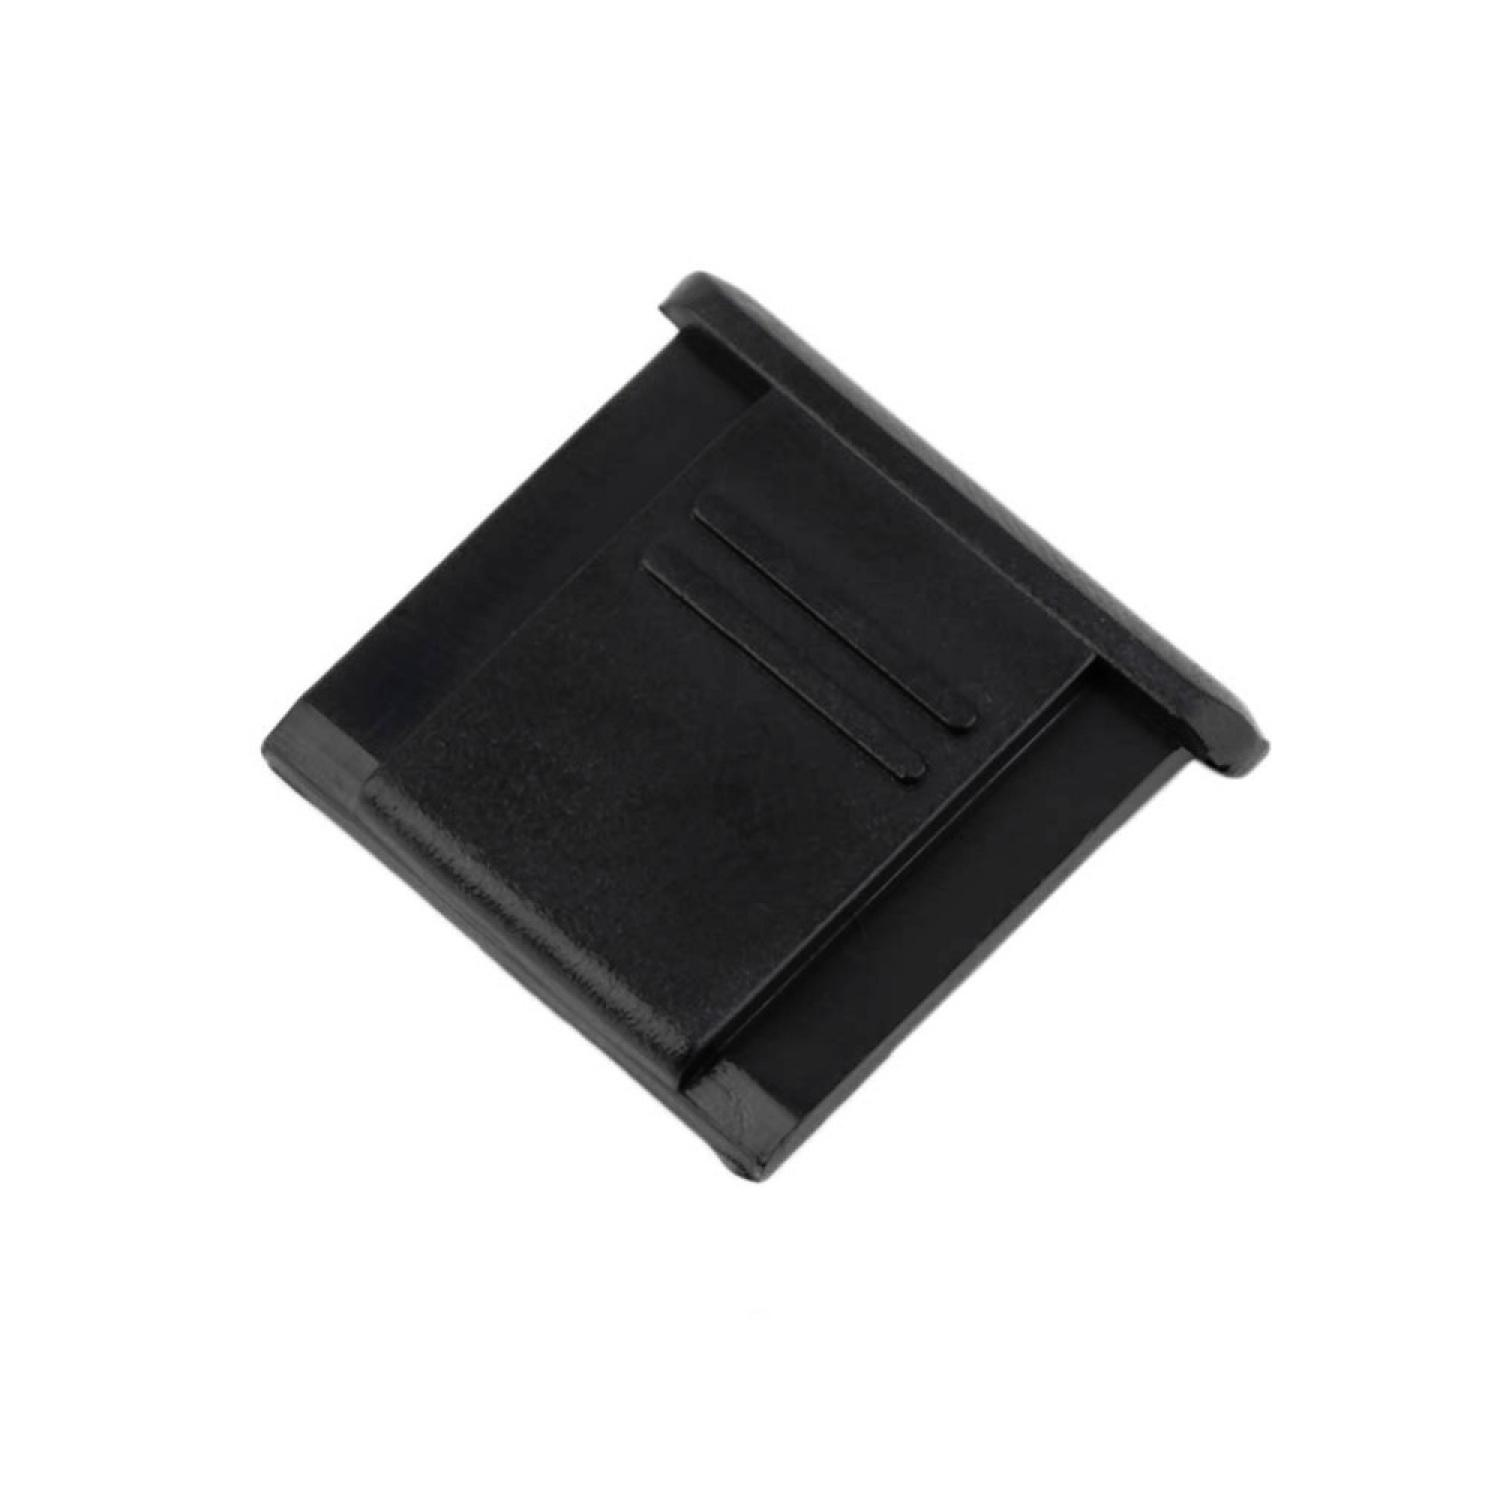 Universal Hot Shoe Cover for Nikon BS-1